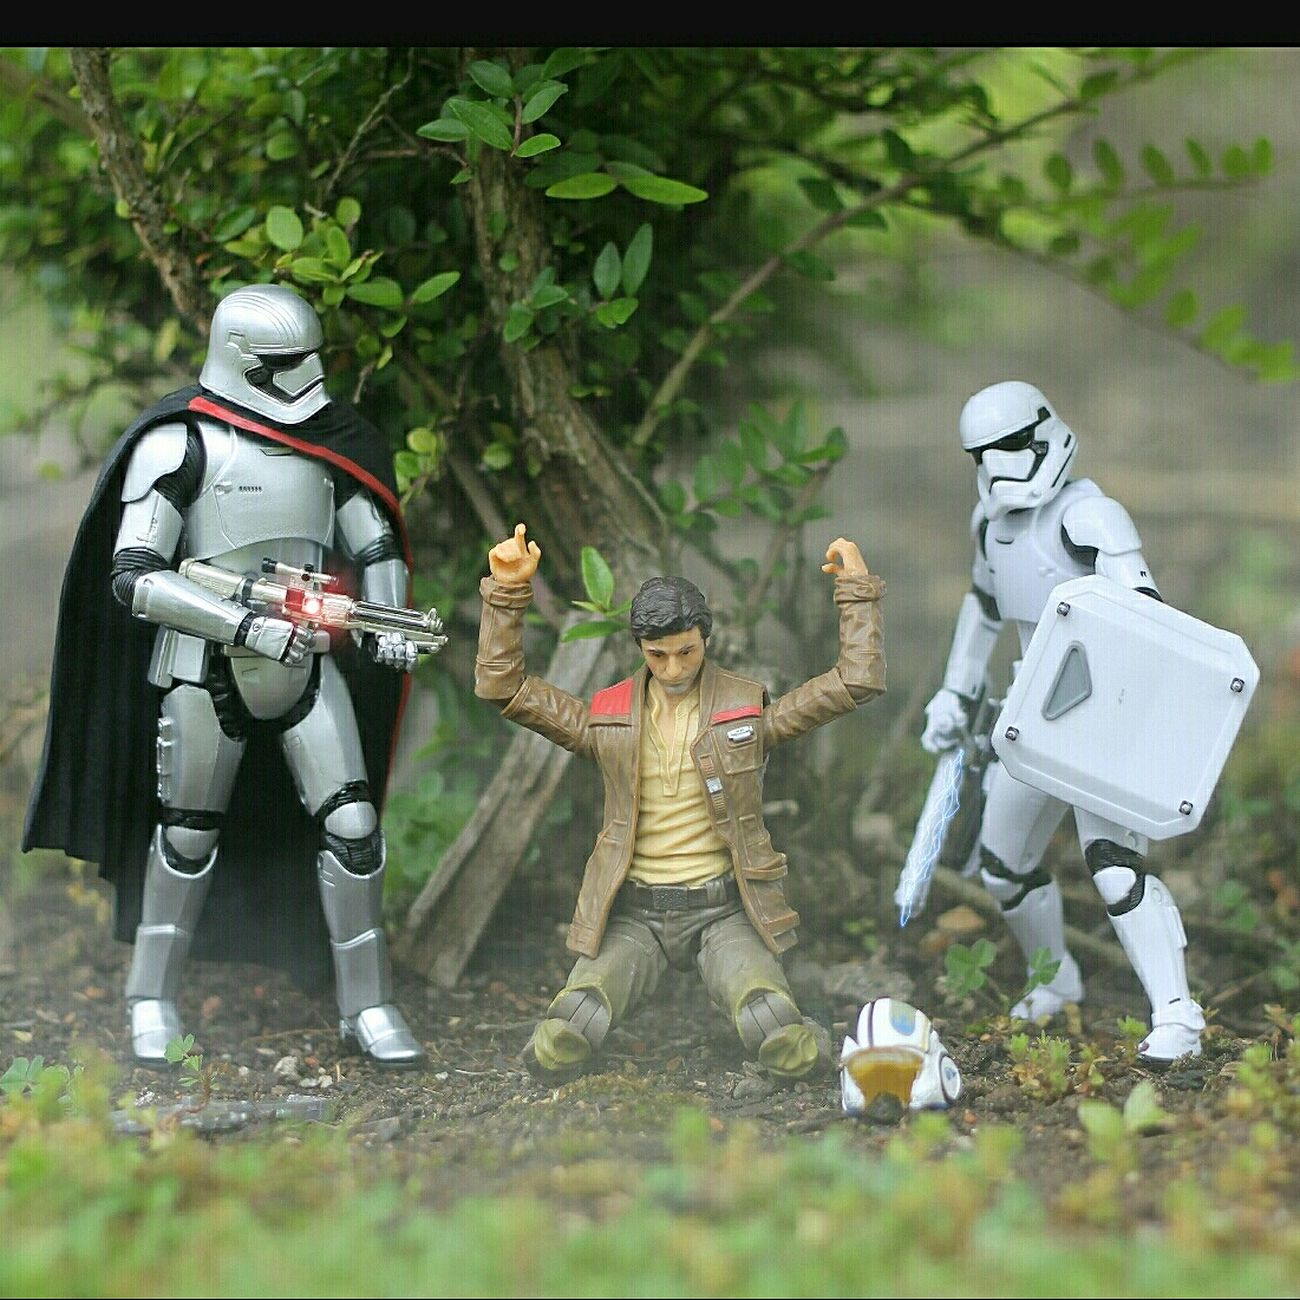 Captainphasma KyloRen Stormtrooper Poedameron Starwars Star Wars R2D2 Hansolo Toy Photography Toyphotography Millenium Falcon Starwarstoys Sandtrooper Rey Finn Starwarsblackseries HasbroToyPic Lukeskywalker Starwarstheforceawakens Jedi Knight Yoda Darthvader Bb8 Xwingfighter C3po